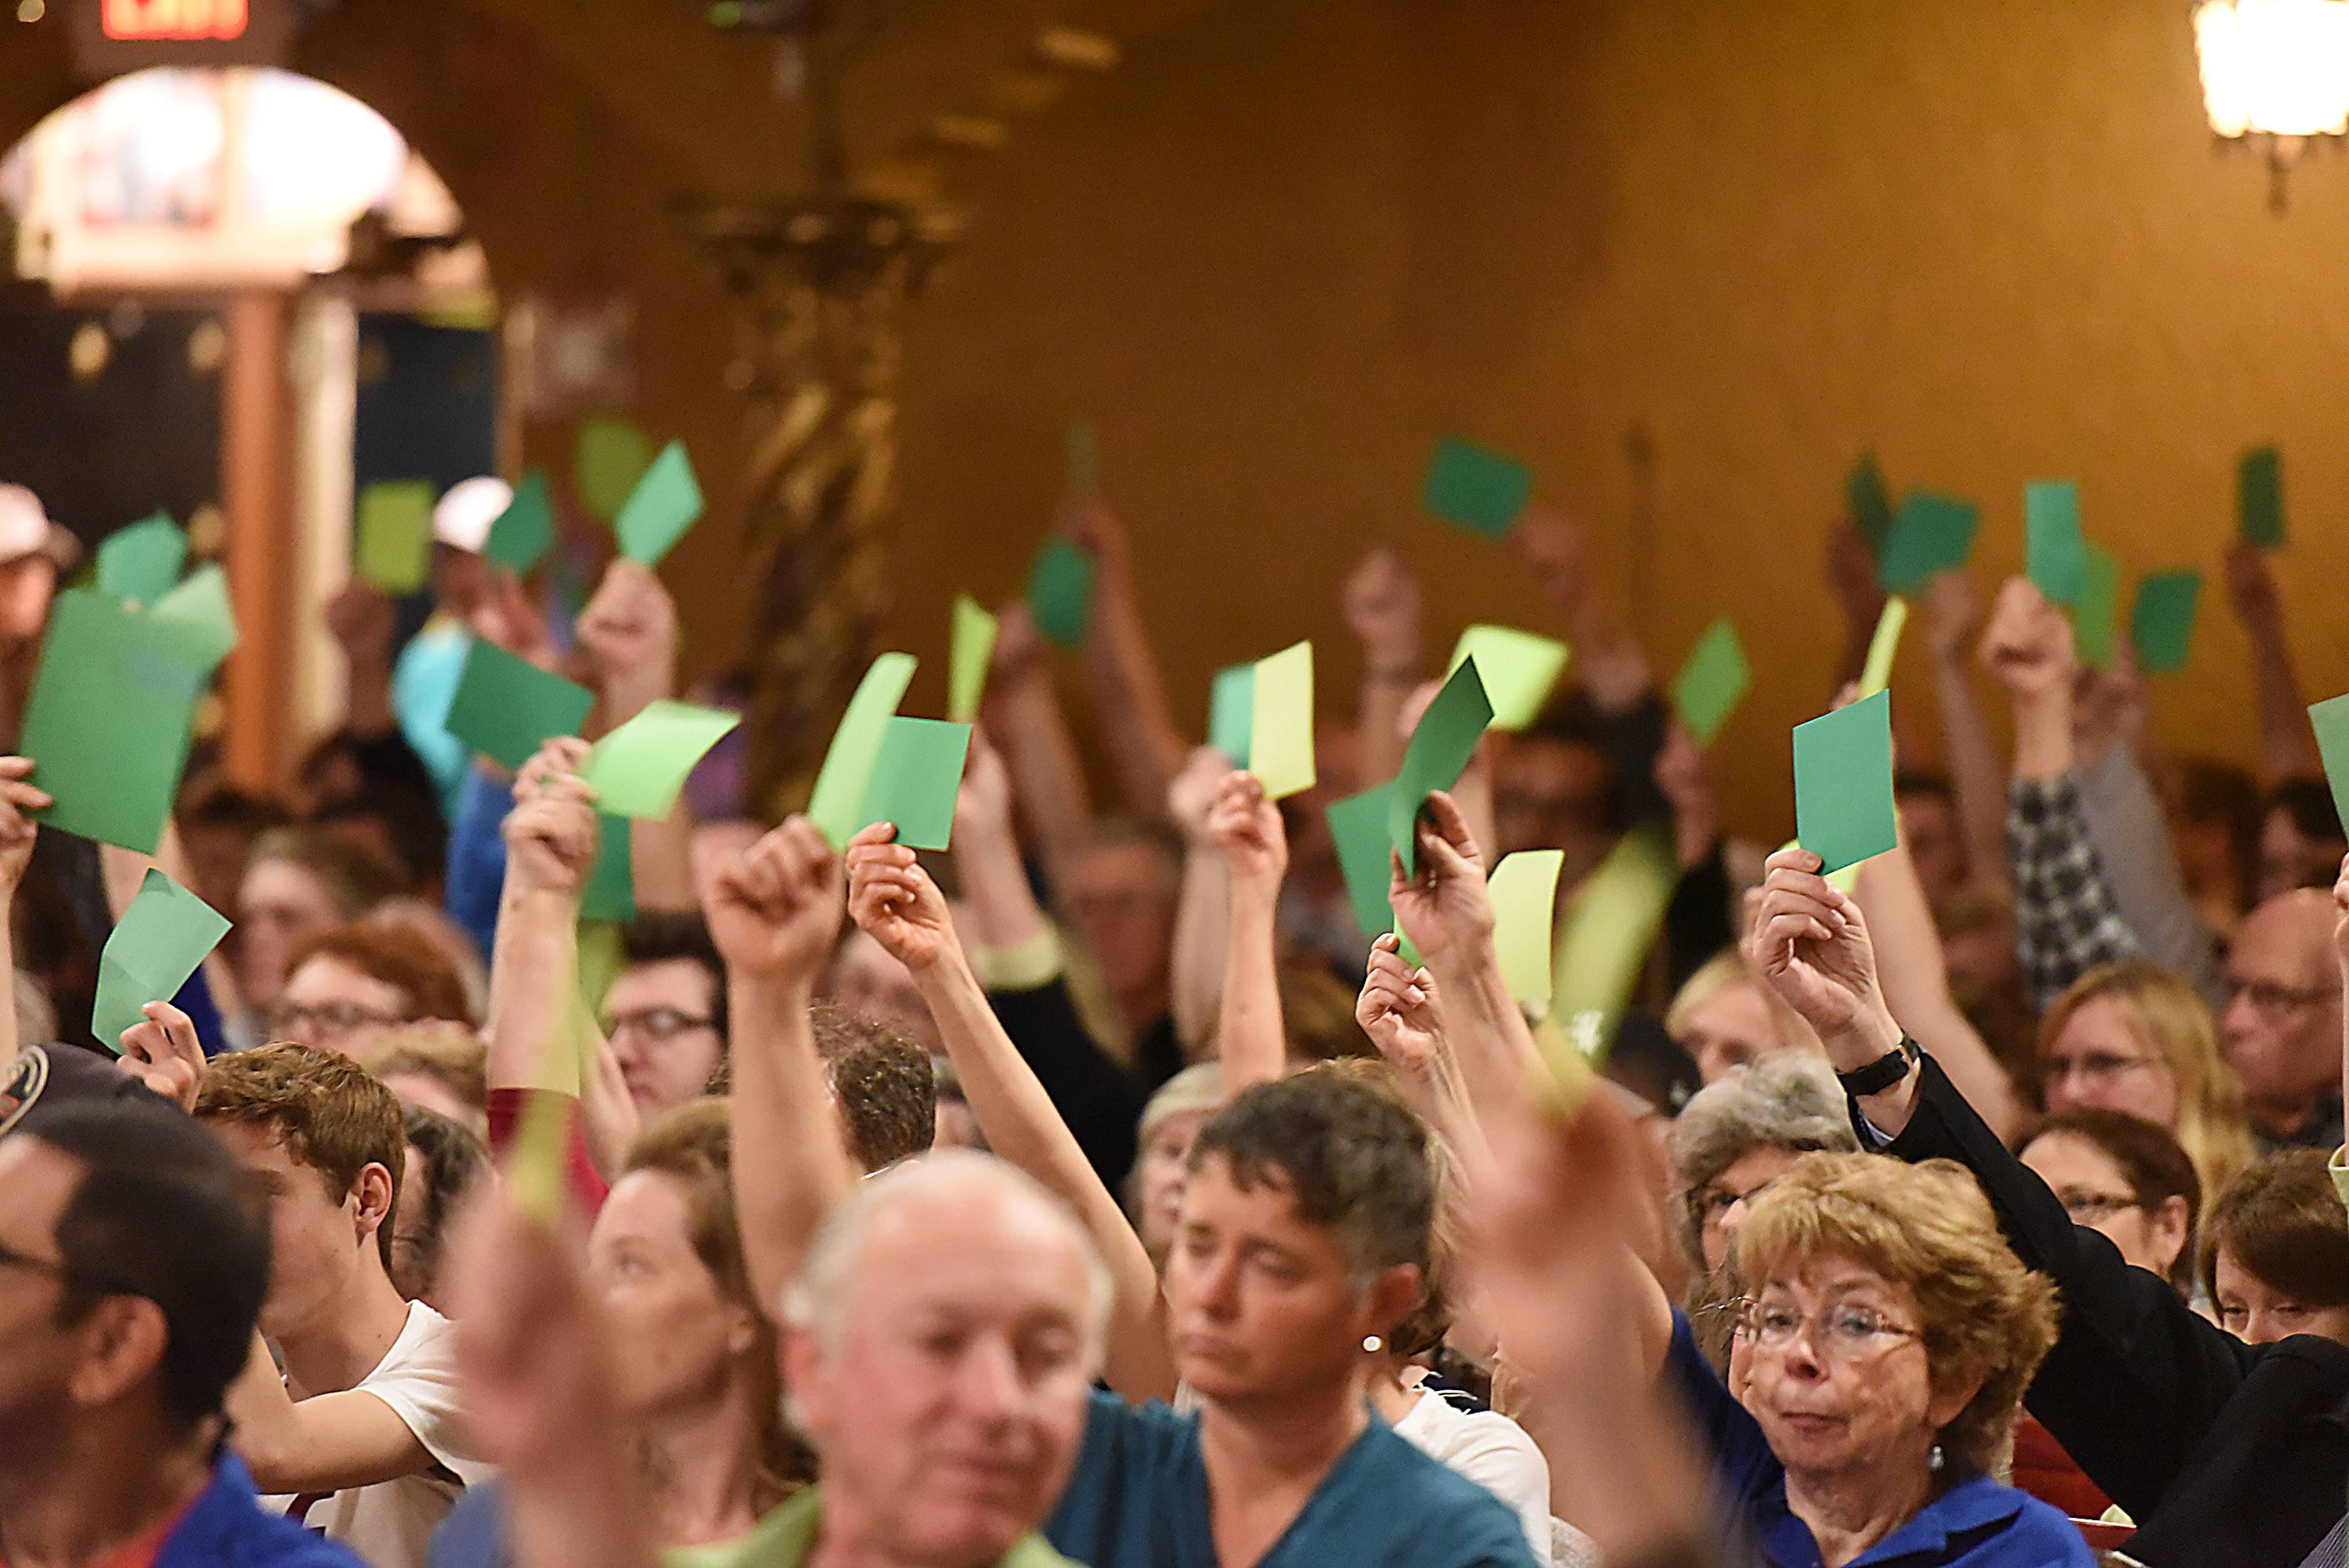 People held red or green cards to express agreement or disagreement with Congressman Randy Hultgren at a town hall forum Tuesday in St. Charles.